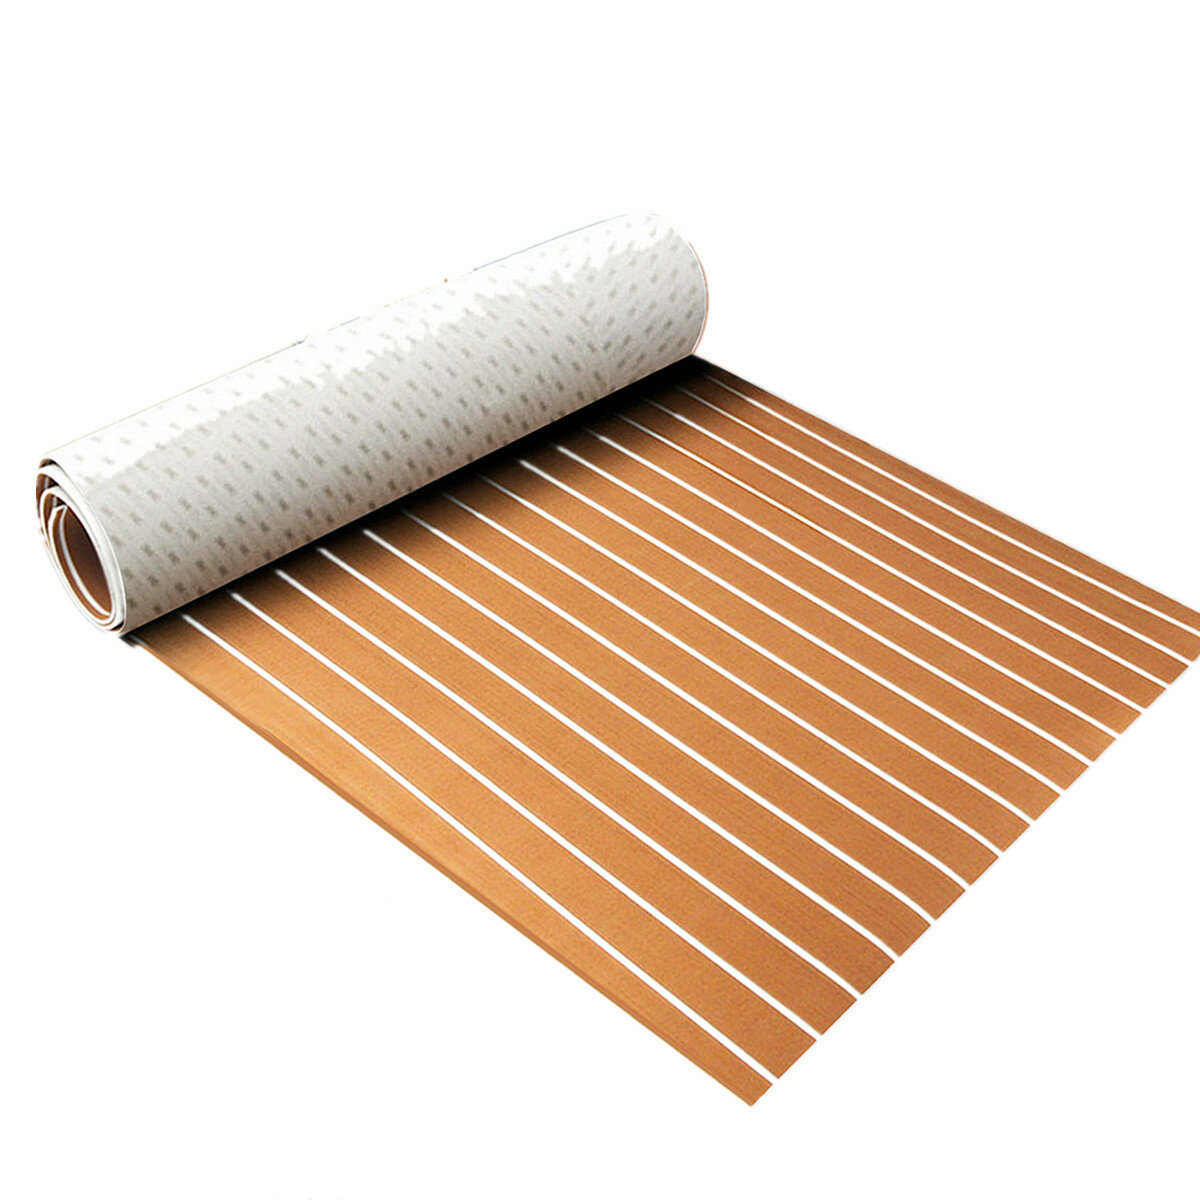 Marine Foam Decking Boat Sheet Non-Slip Yacht Flooring EVA Foam Floor Sheet Self-Adhesive Mat